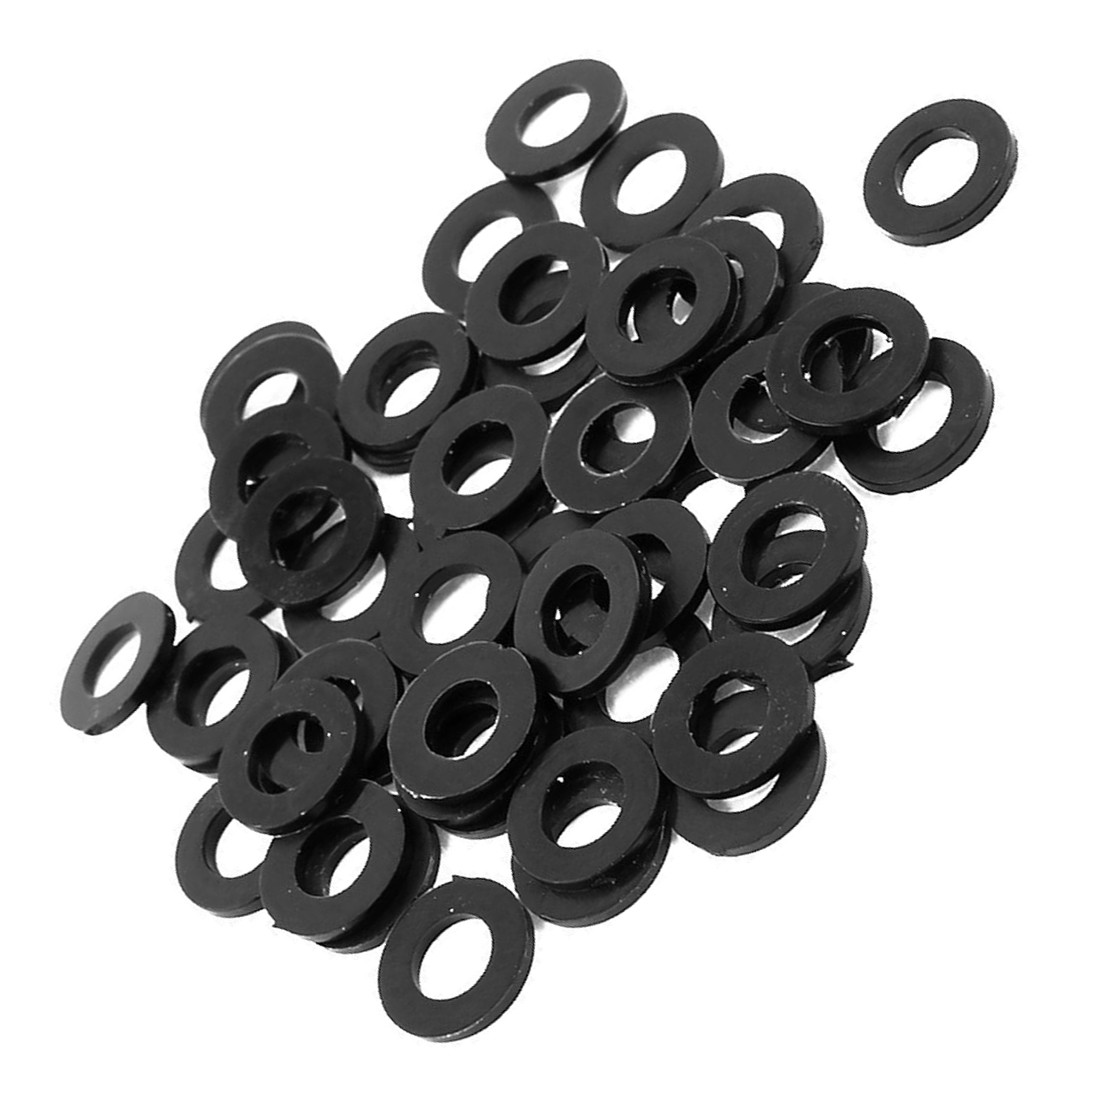 50pcs m5 x 10mm plastic spacer flat nylon standoff washer insulation cr ebay. Black Bedroom Furniture Sets. Home Design Ideas